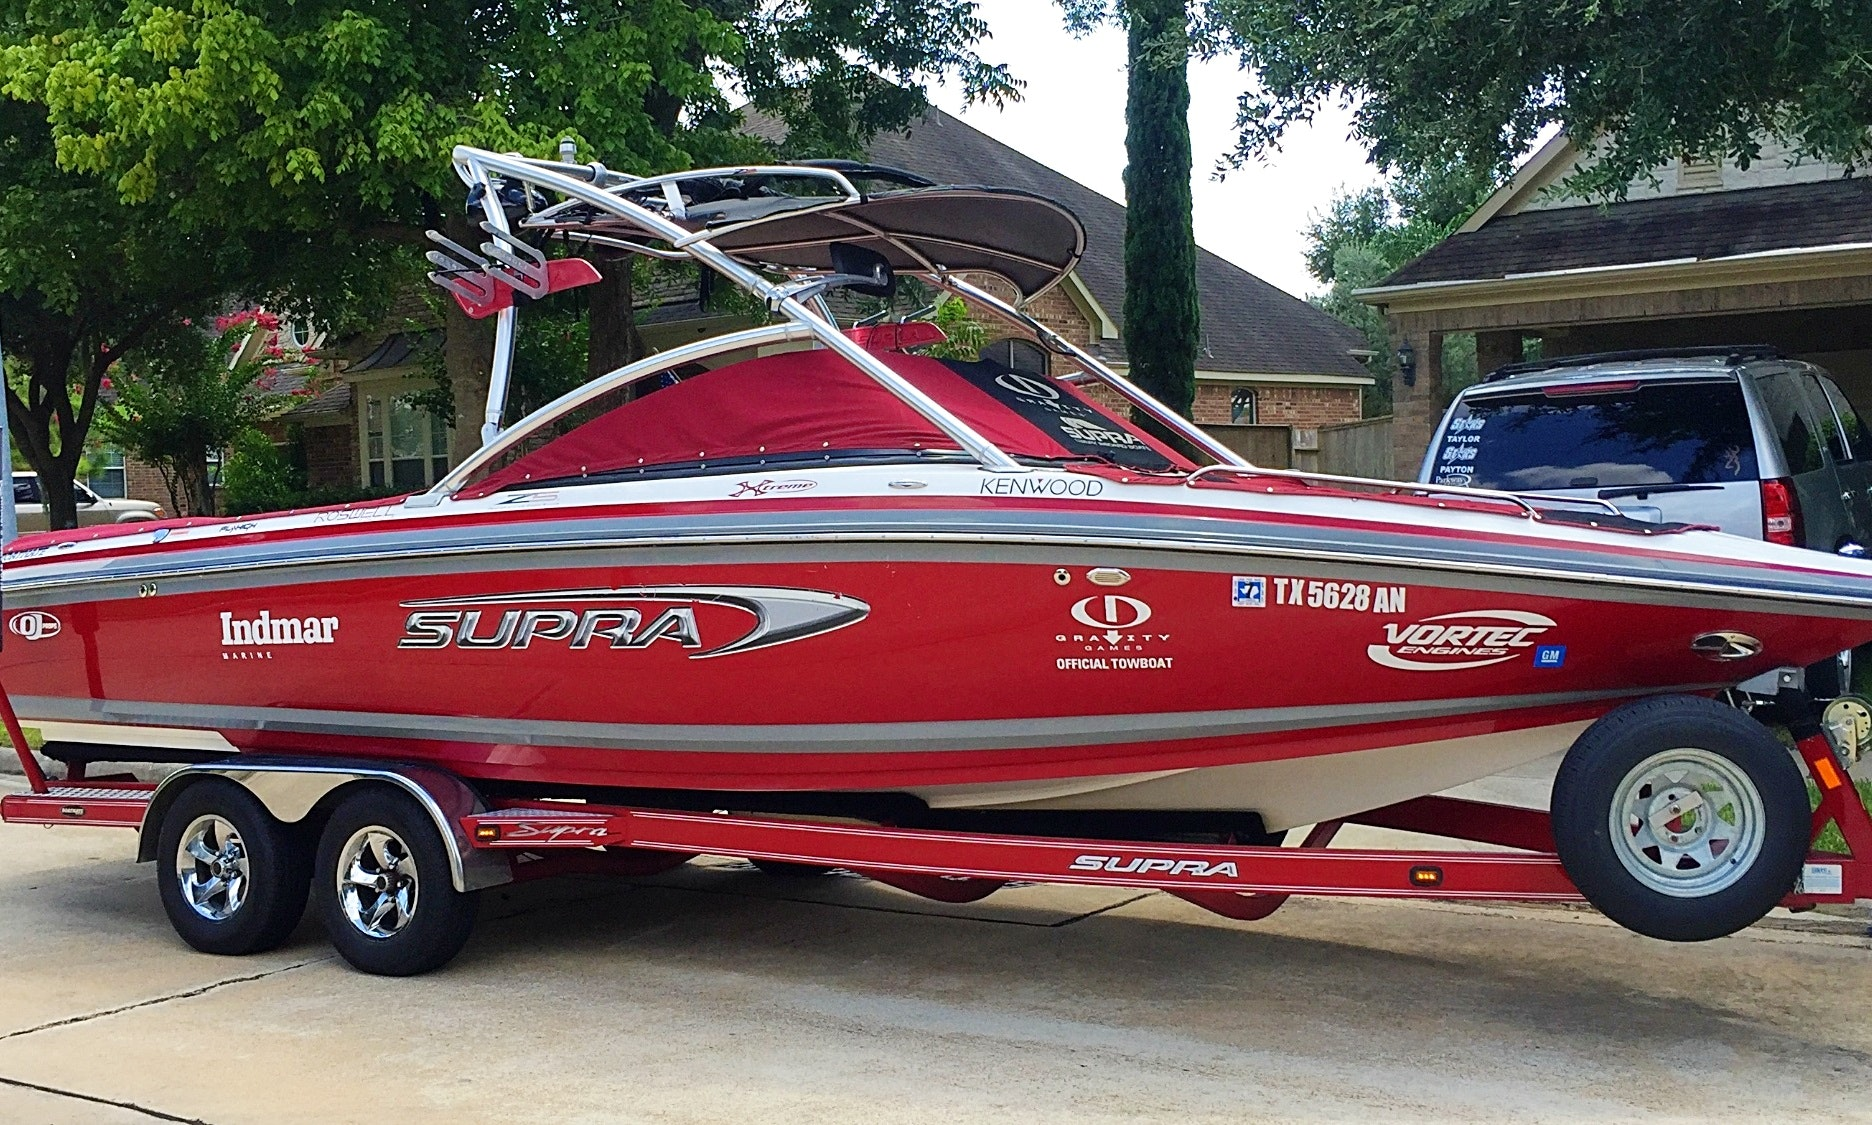 Gorgeous 24ft Supra Bowrider Boat Rental In Conroe Texas